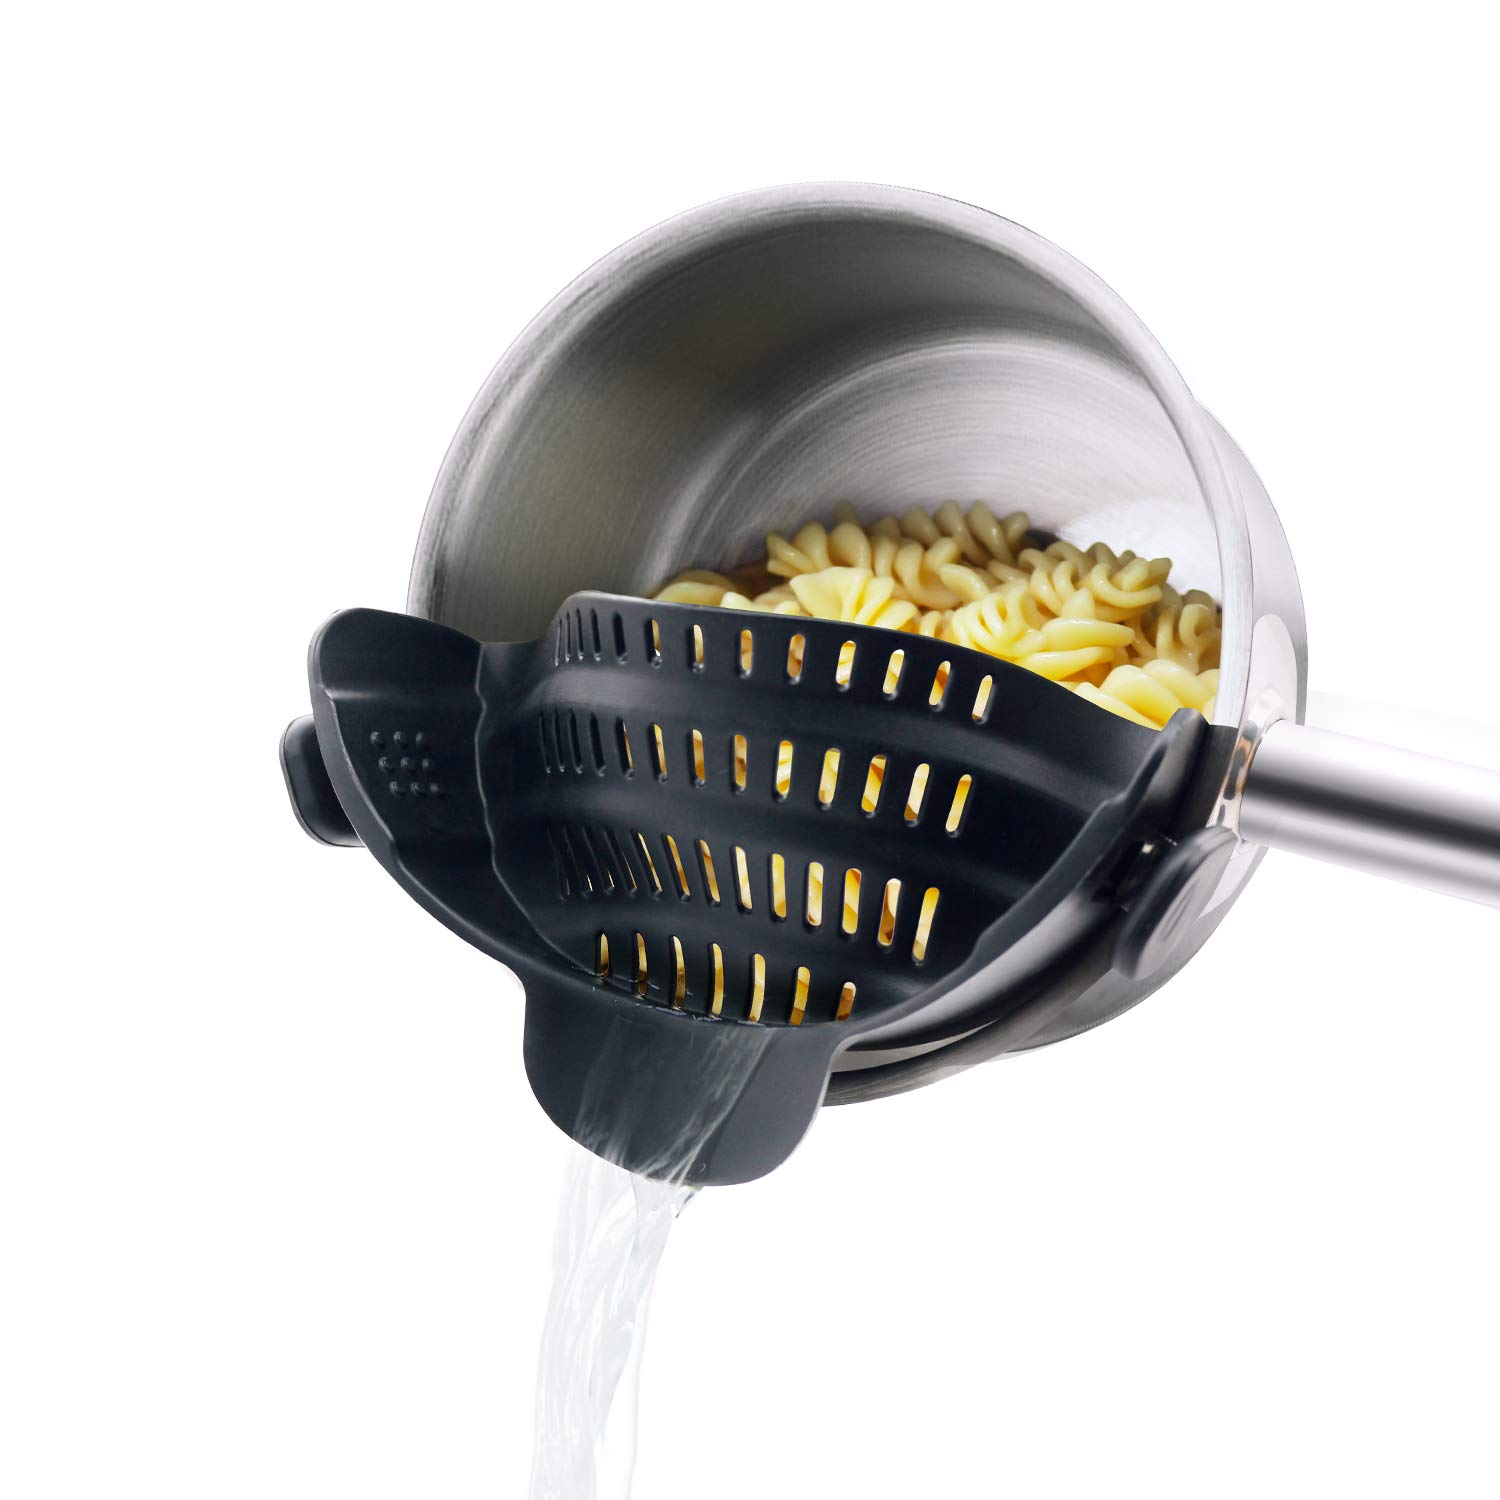 Pasta Strainer,Spaghetti Strainer with Clip On Silicone Colander Made by FDA Approved,Fits Most Pots and Bowls